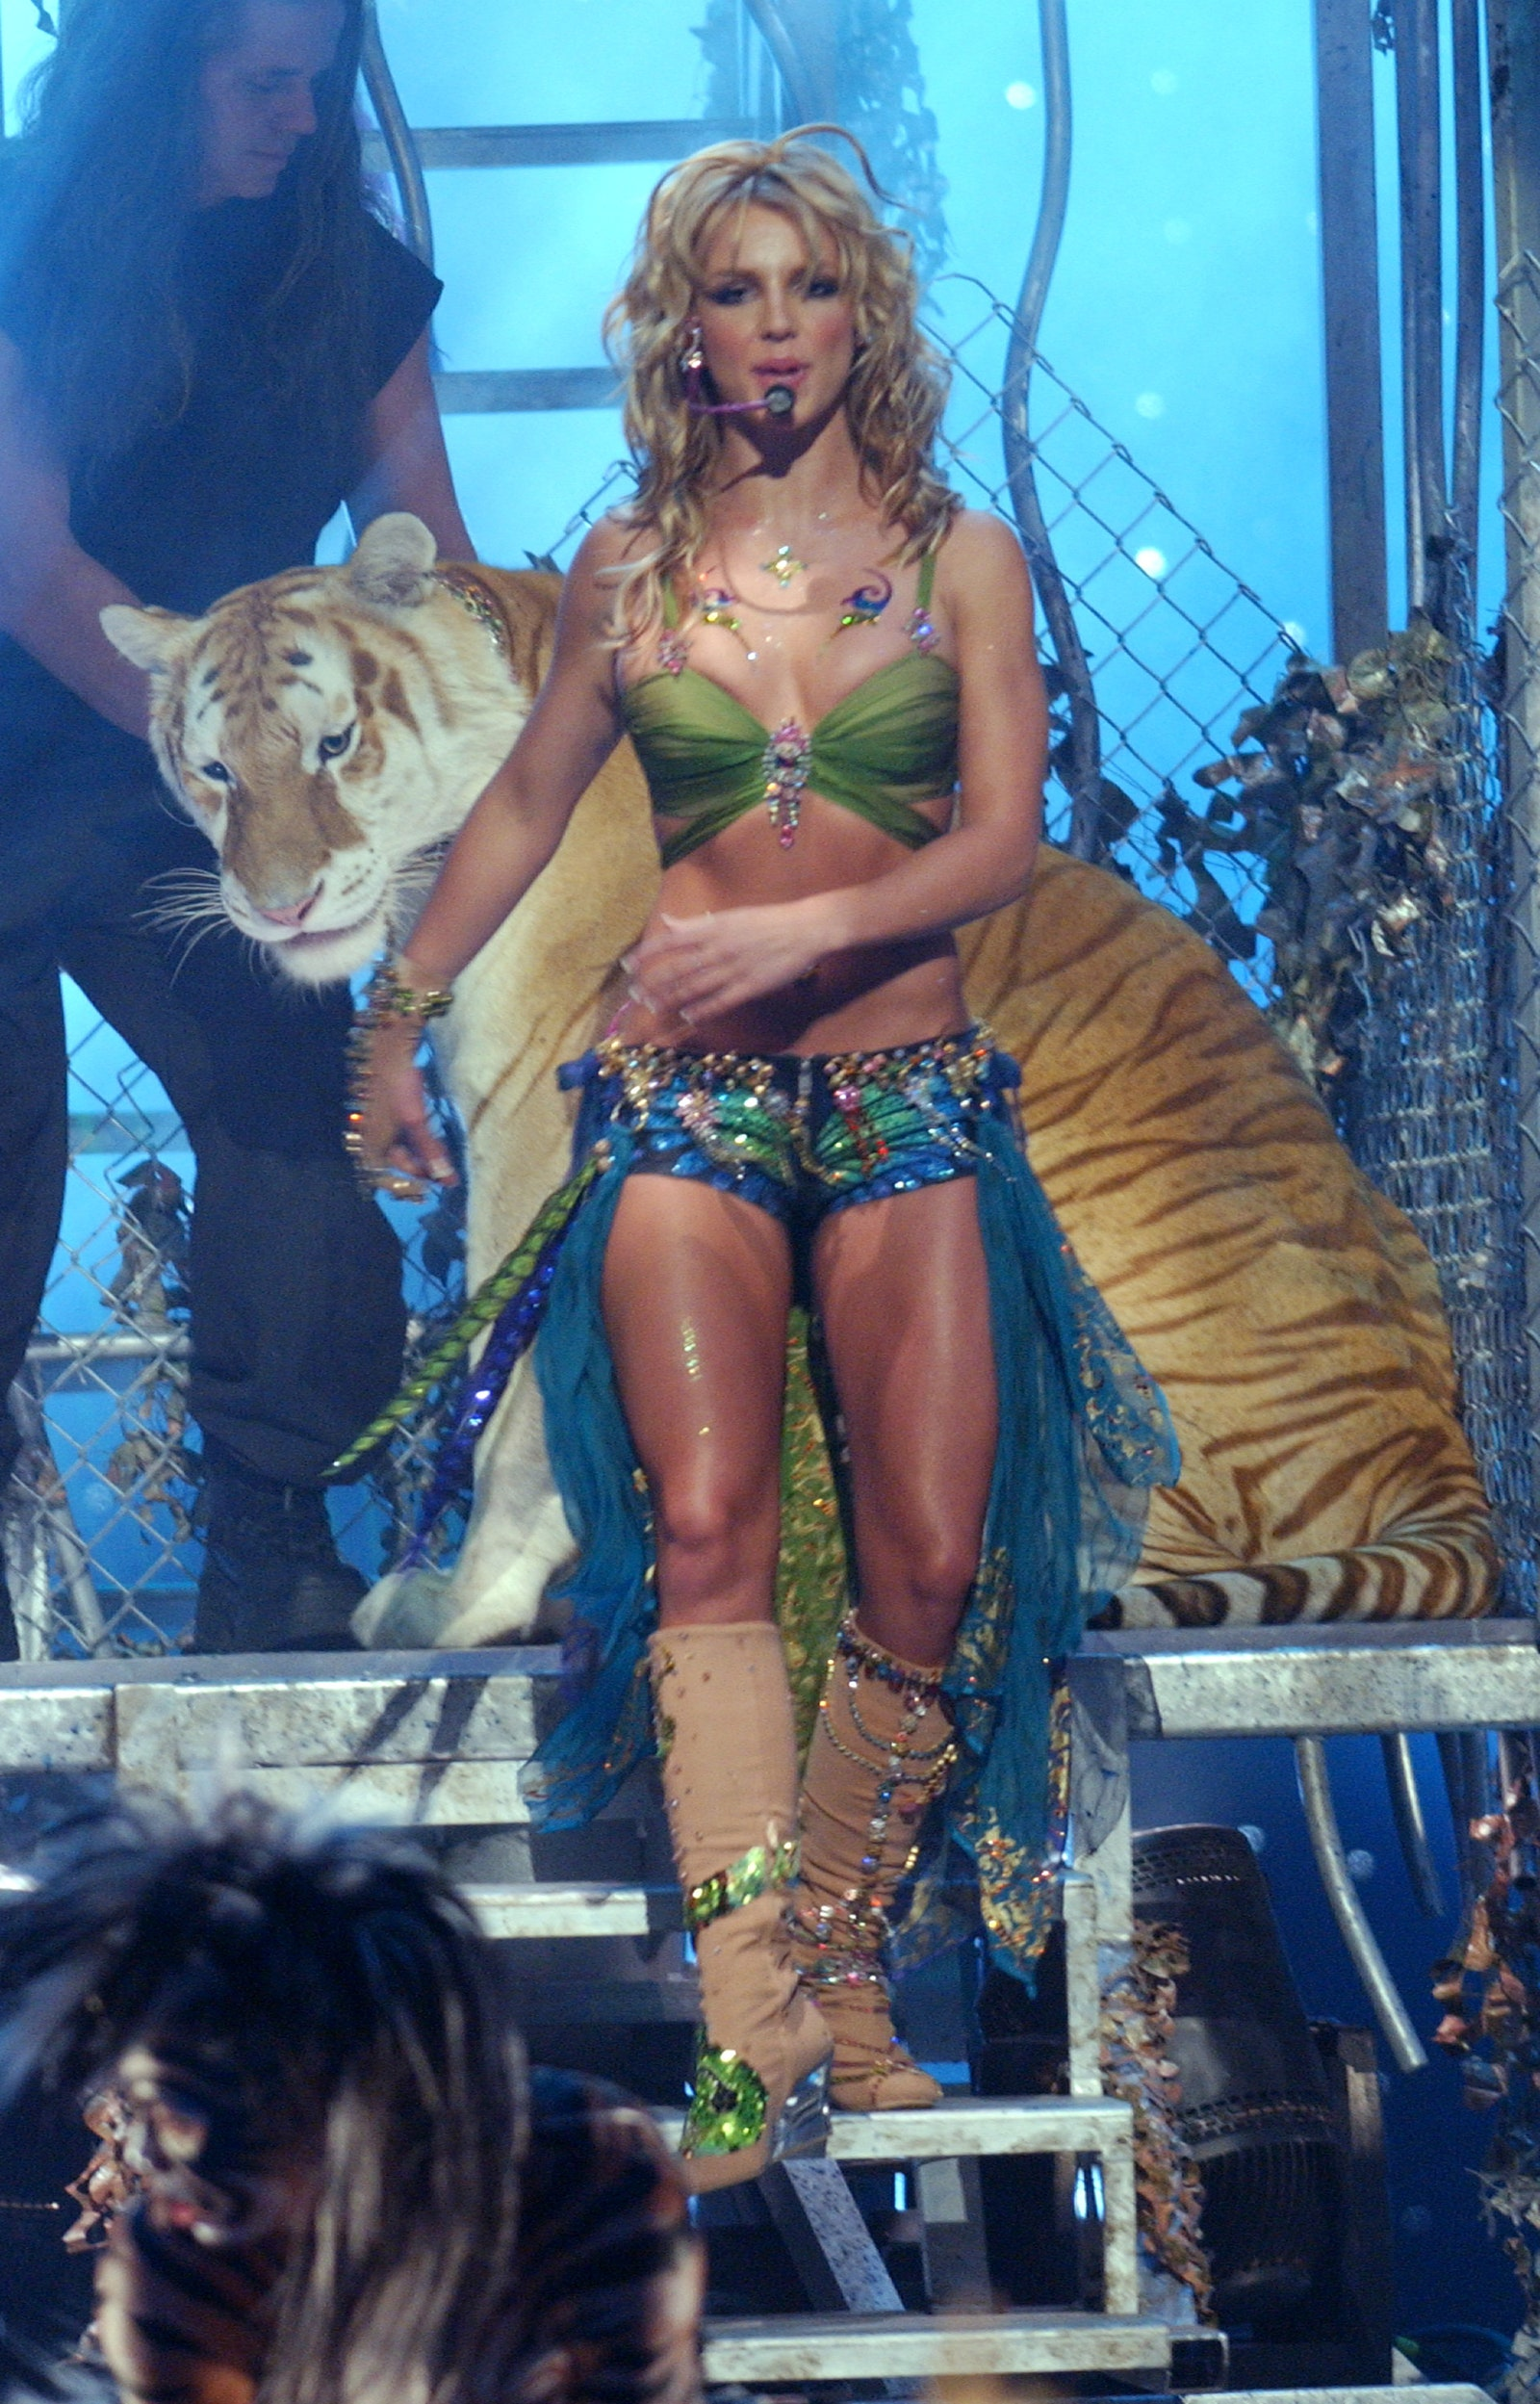 Britney Spears performs at the 2001 VMAs